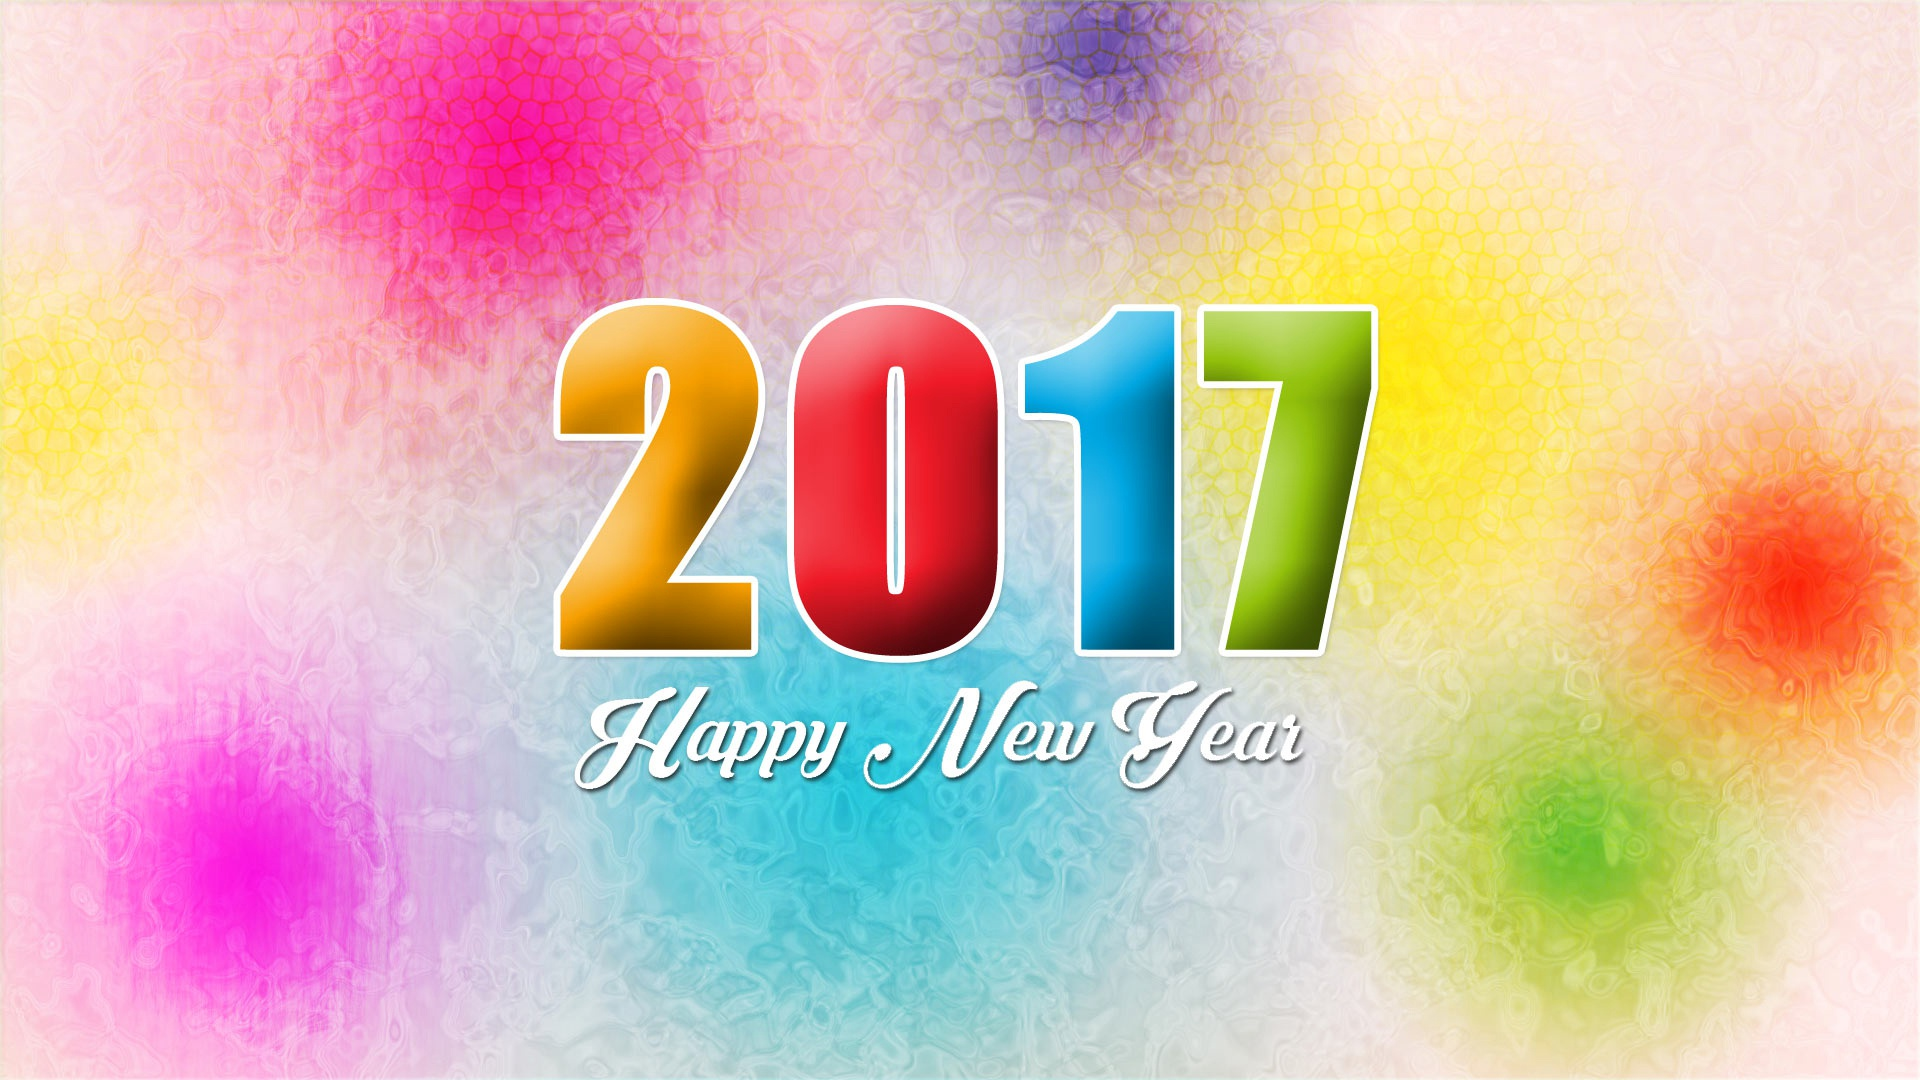 Best Happy New Year 2017 Wishes Images Messages Pics ...